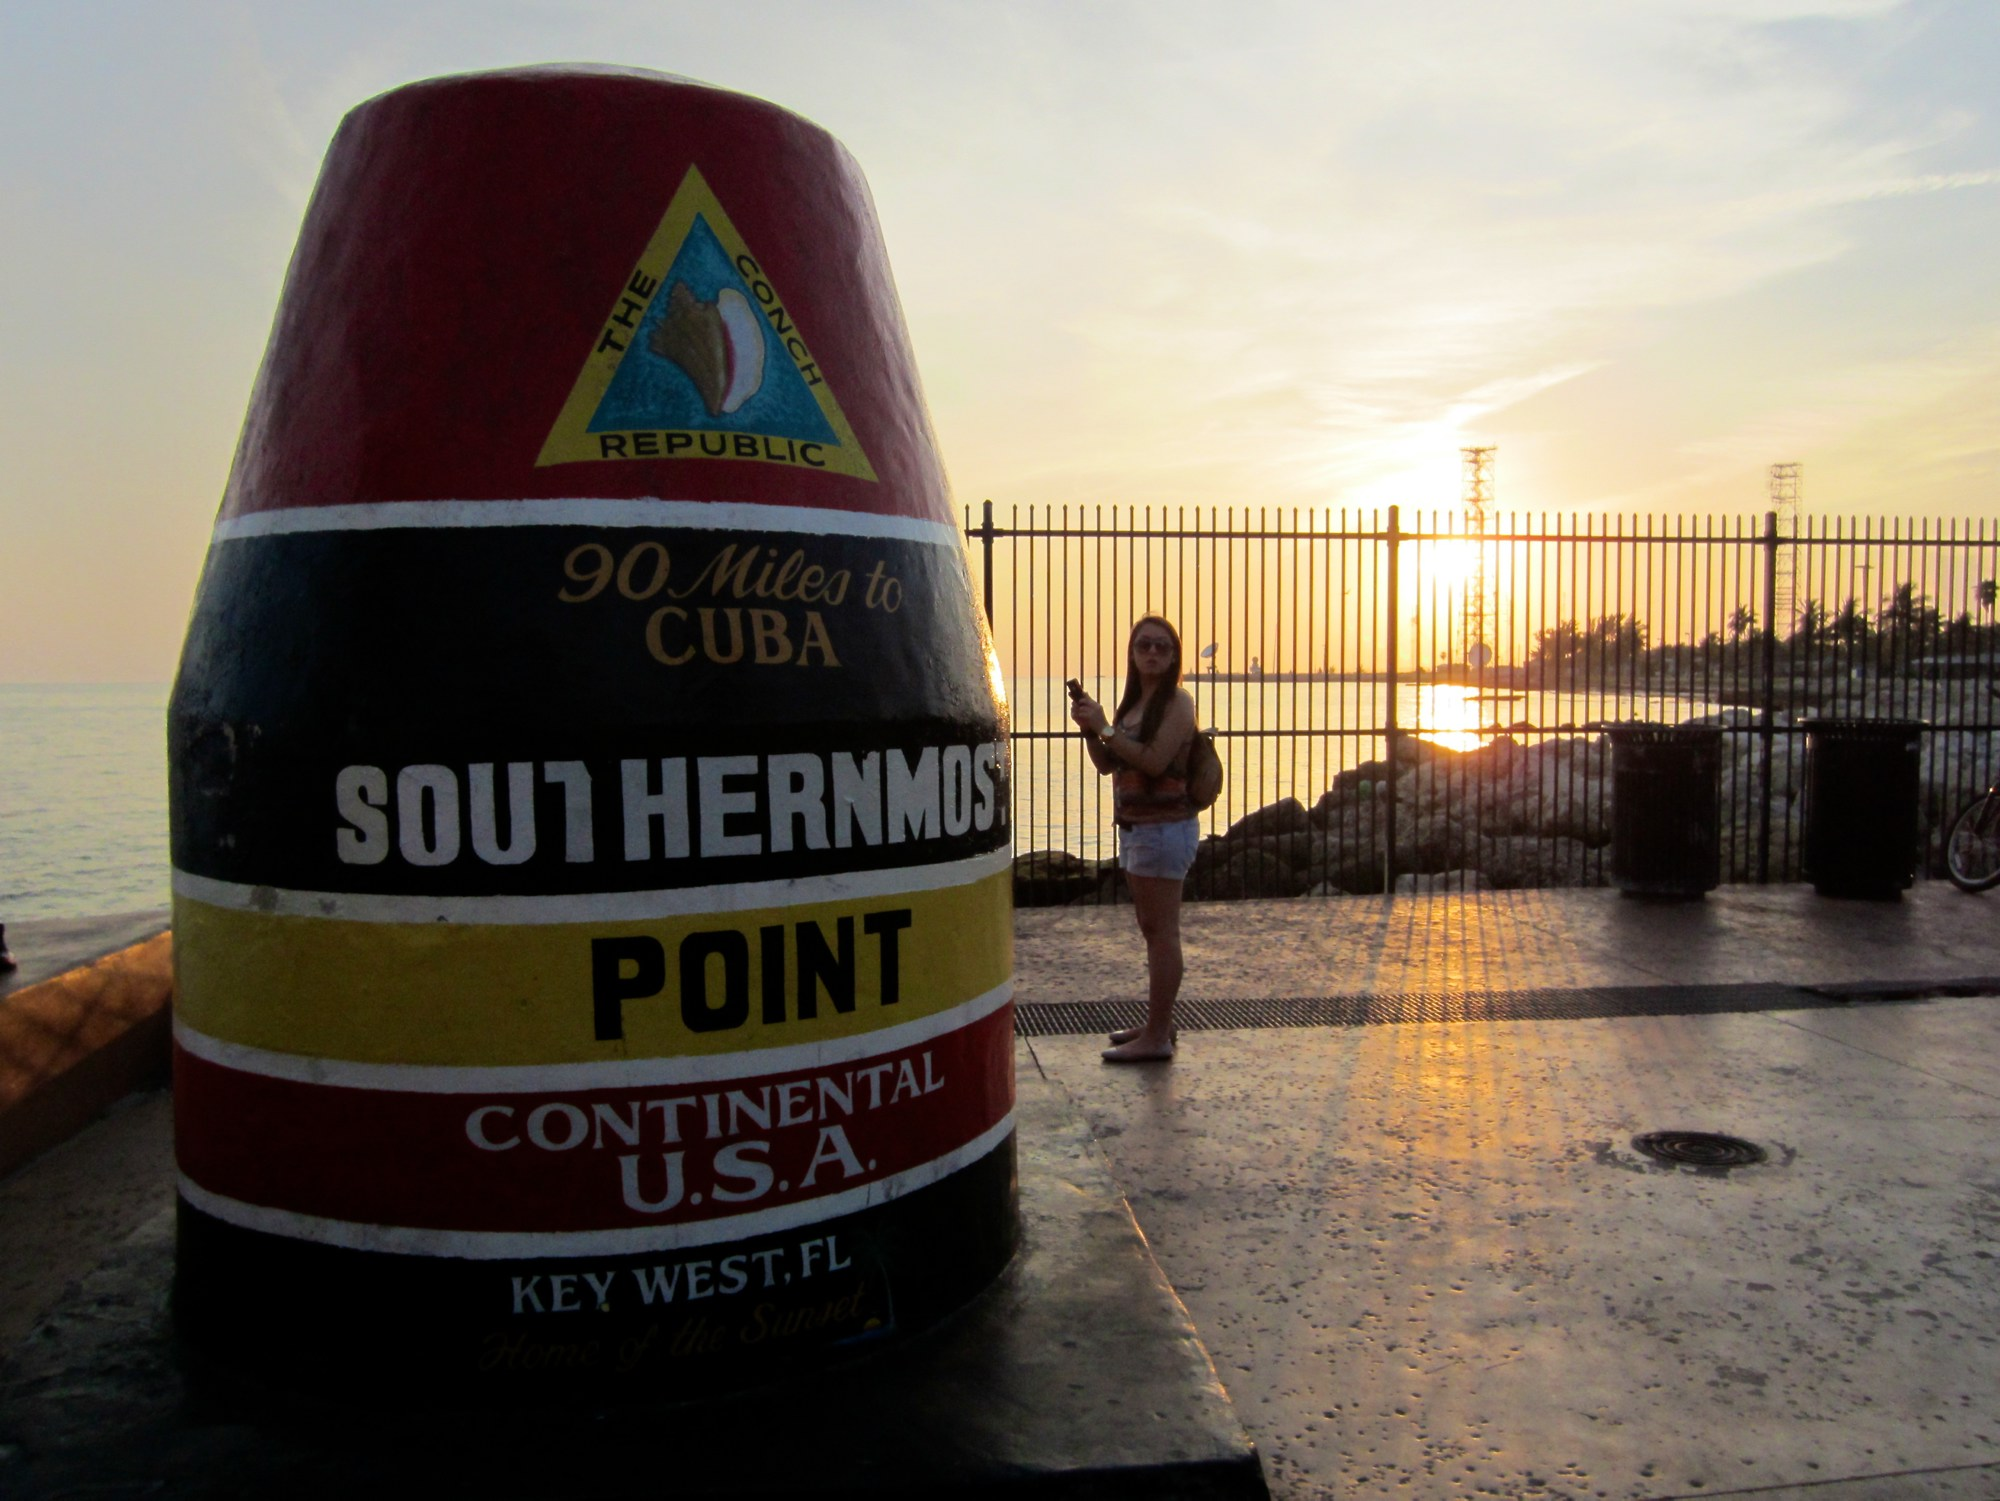 Road Trip USA: Monument at southernmost point in the USA